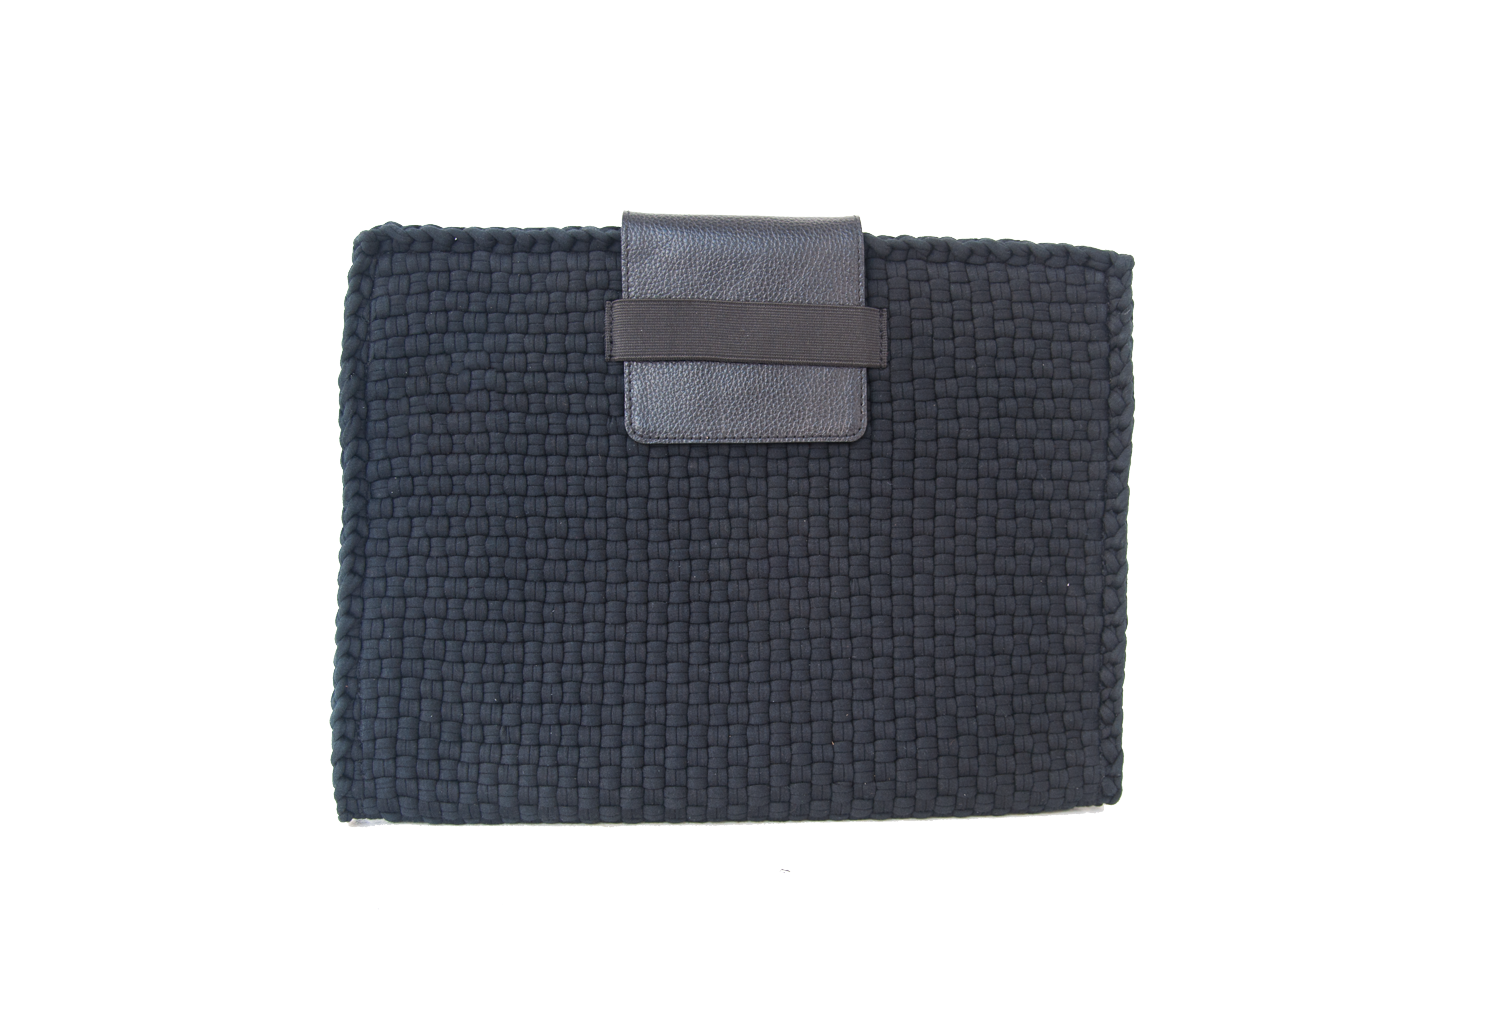 RAGS2RICHES: LAPTOP SLEEVE - about $32 US (sold in the Philippines), handwoven by Filipino artisans from upcycled, overstock, and/or indigenous fabrics.